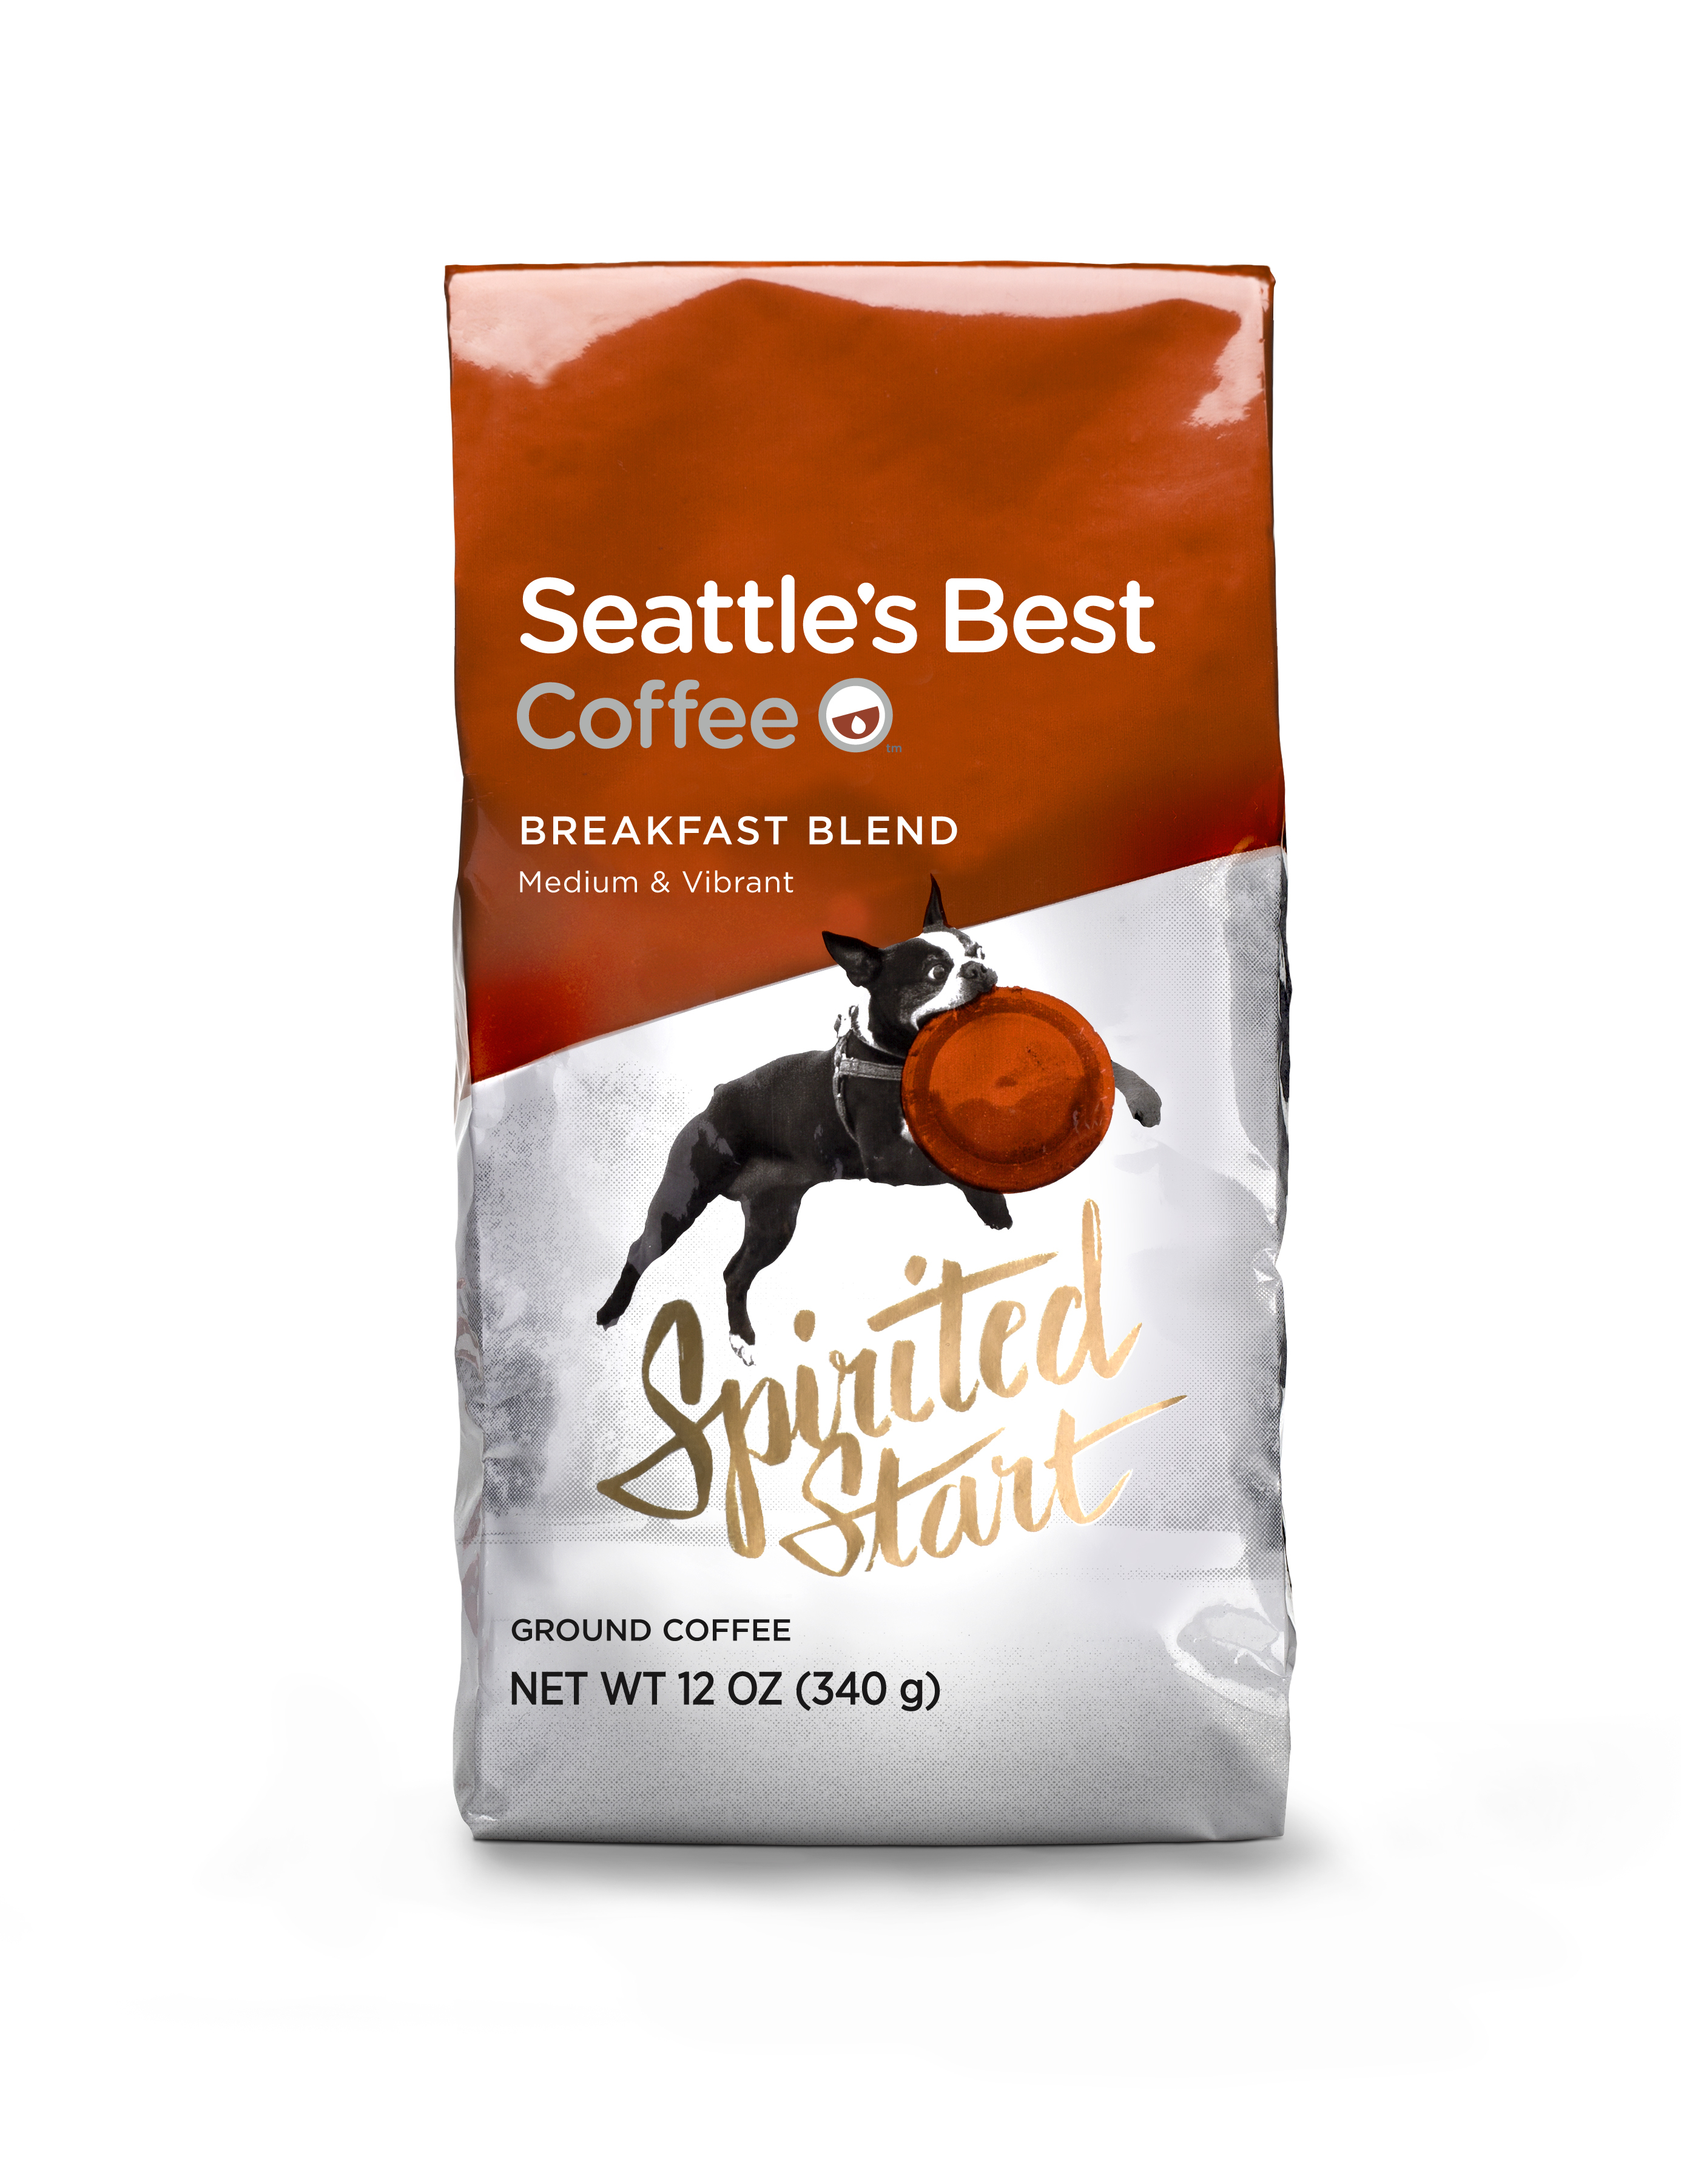 Seattle's Best Coffee is expanding its roast and ground lineup with a new Breakfast Blend. (Photo: Business Wire)